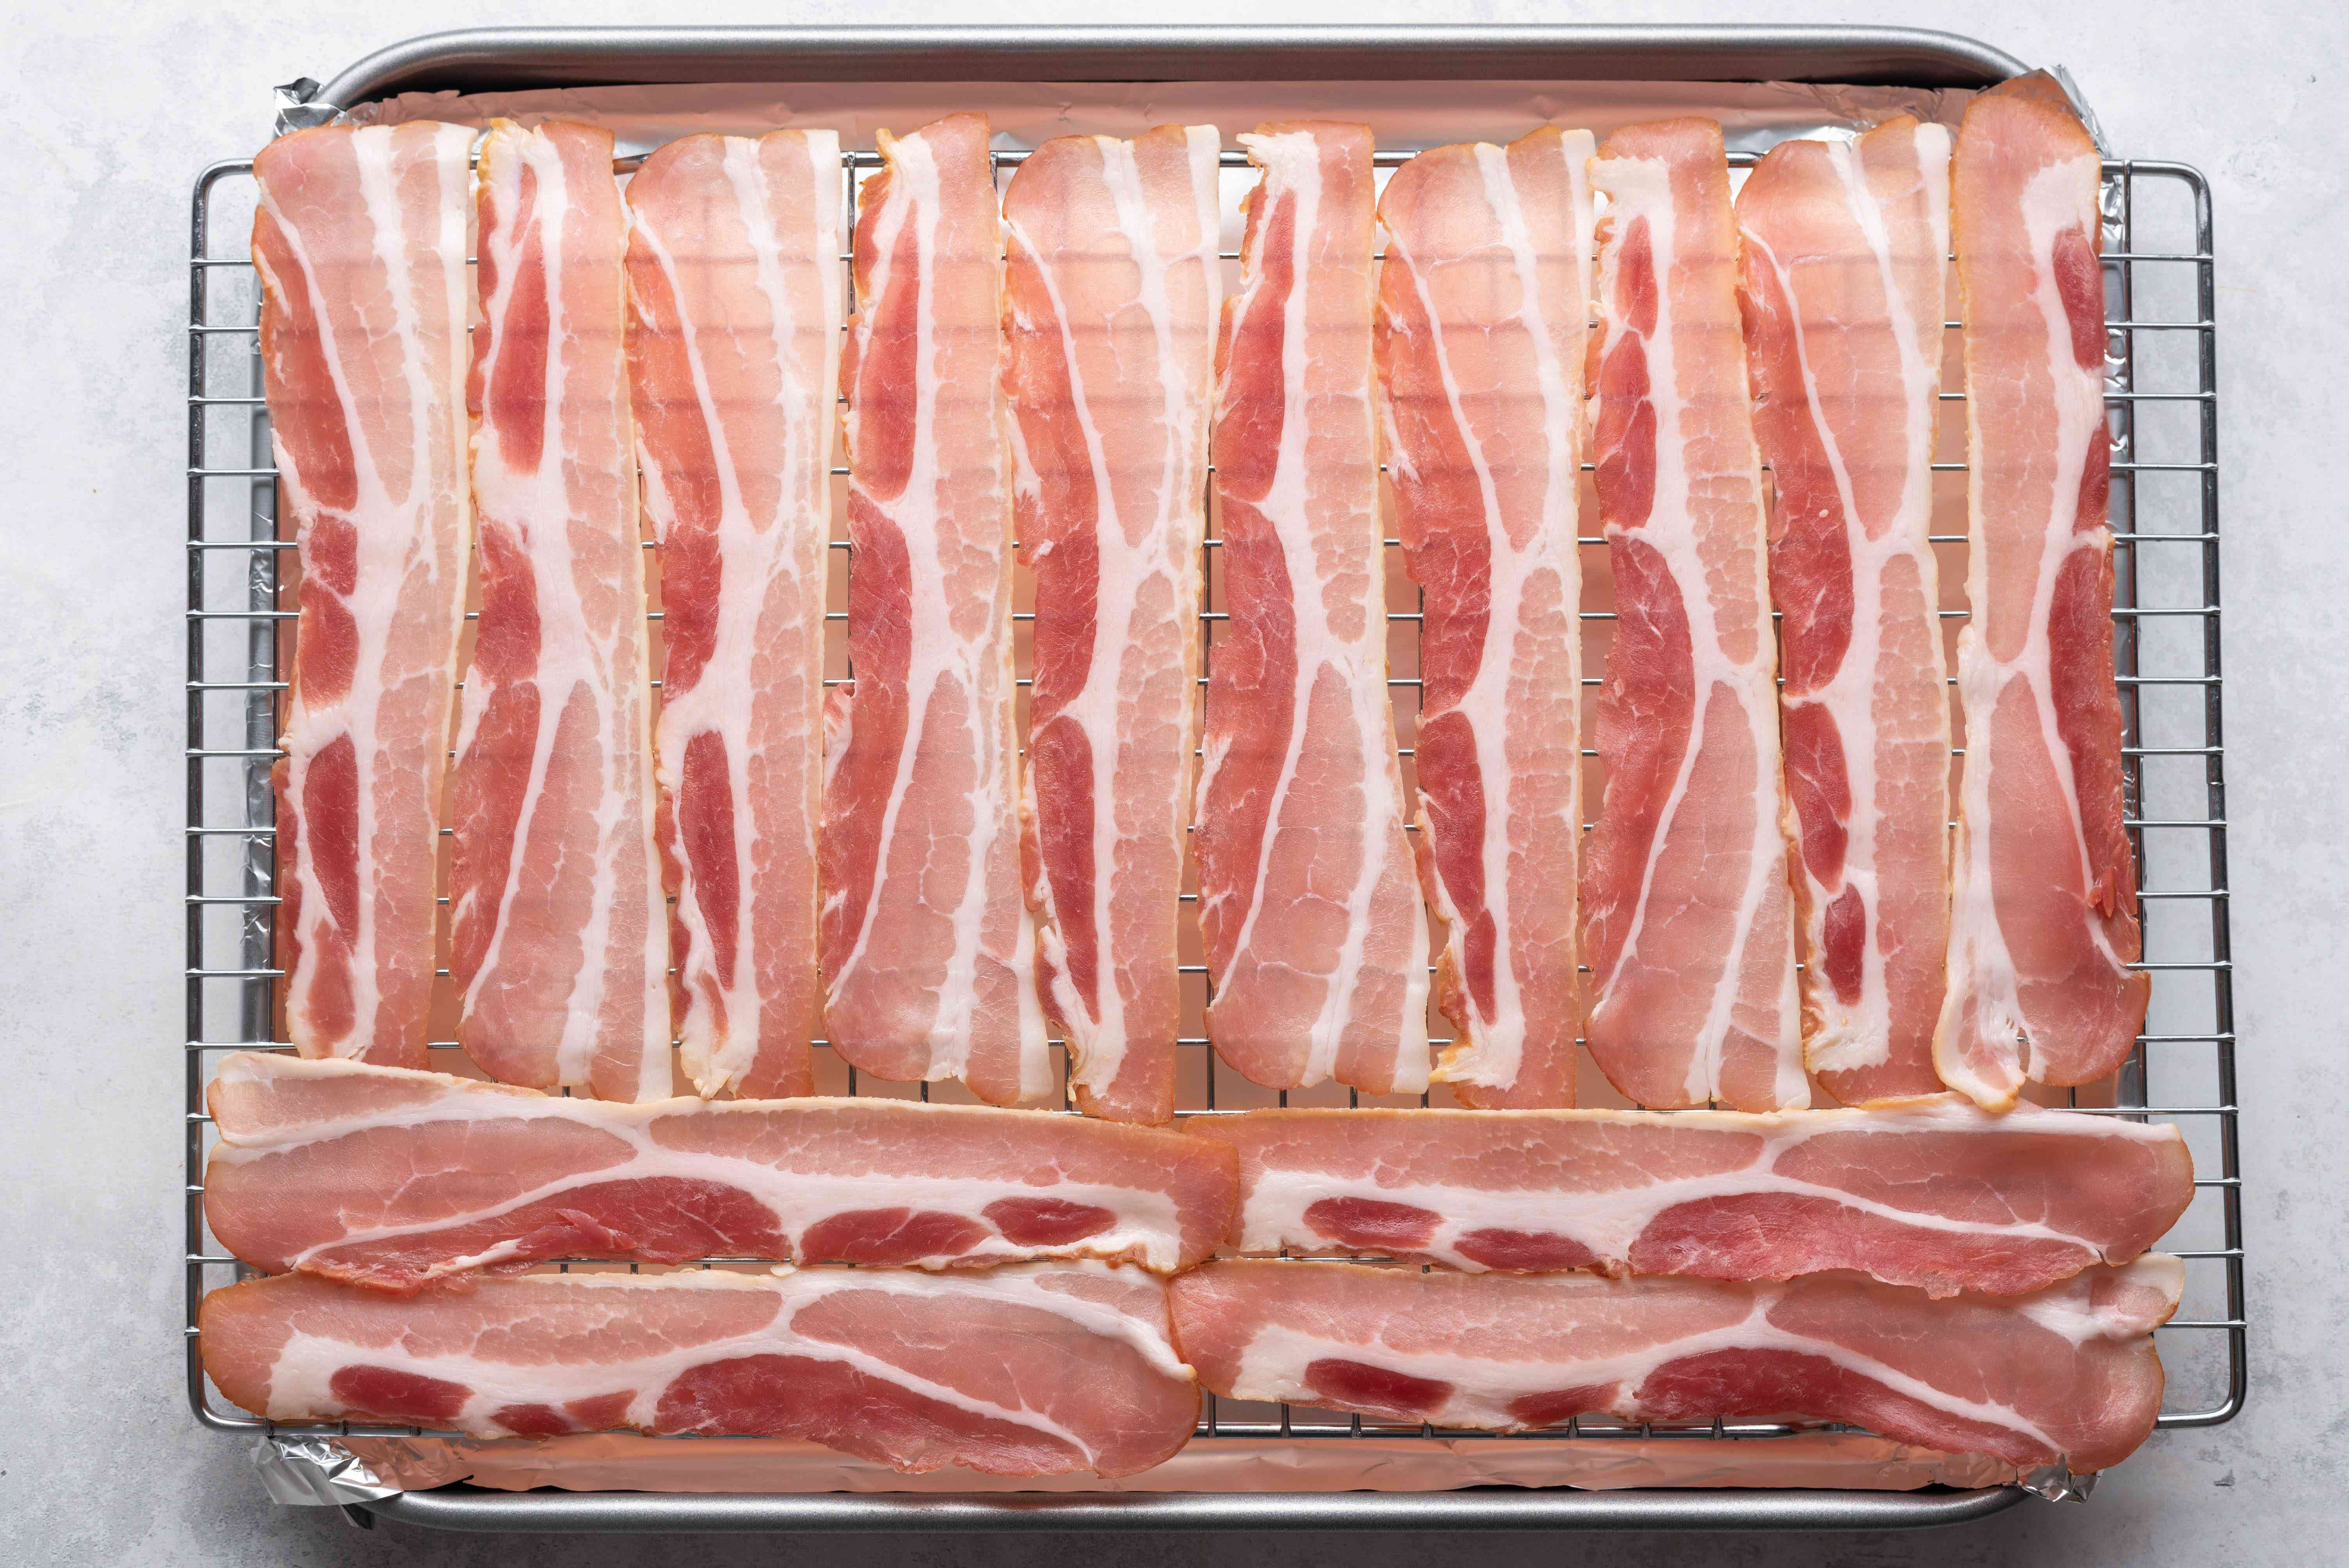 Bacon on the rack